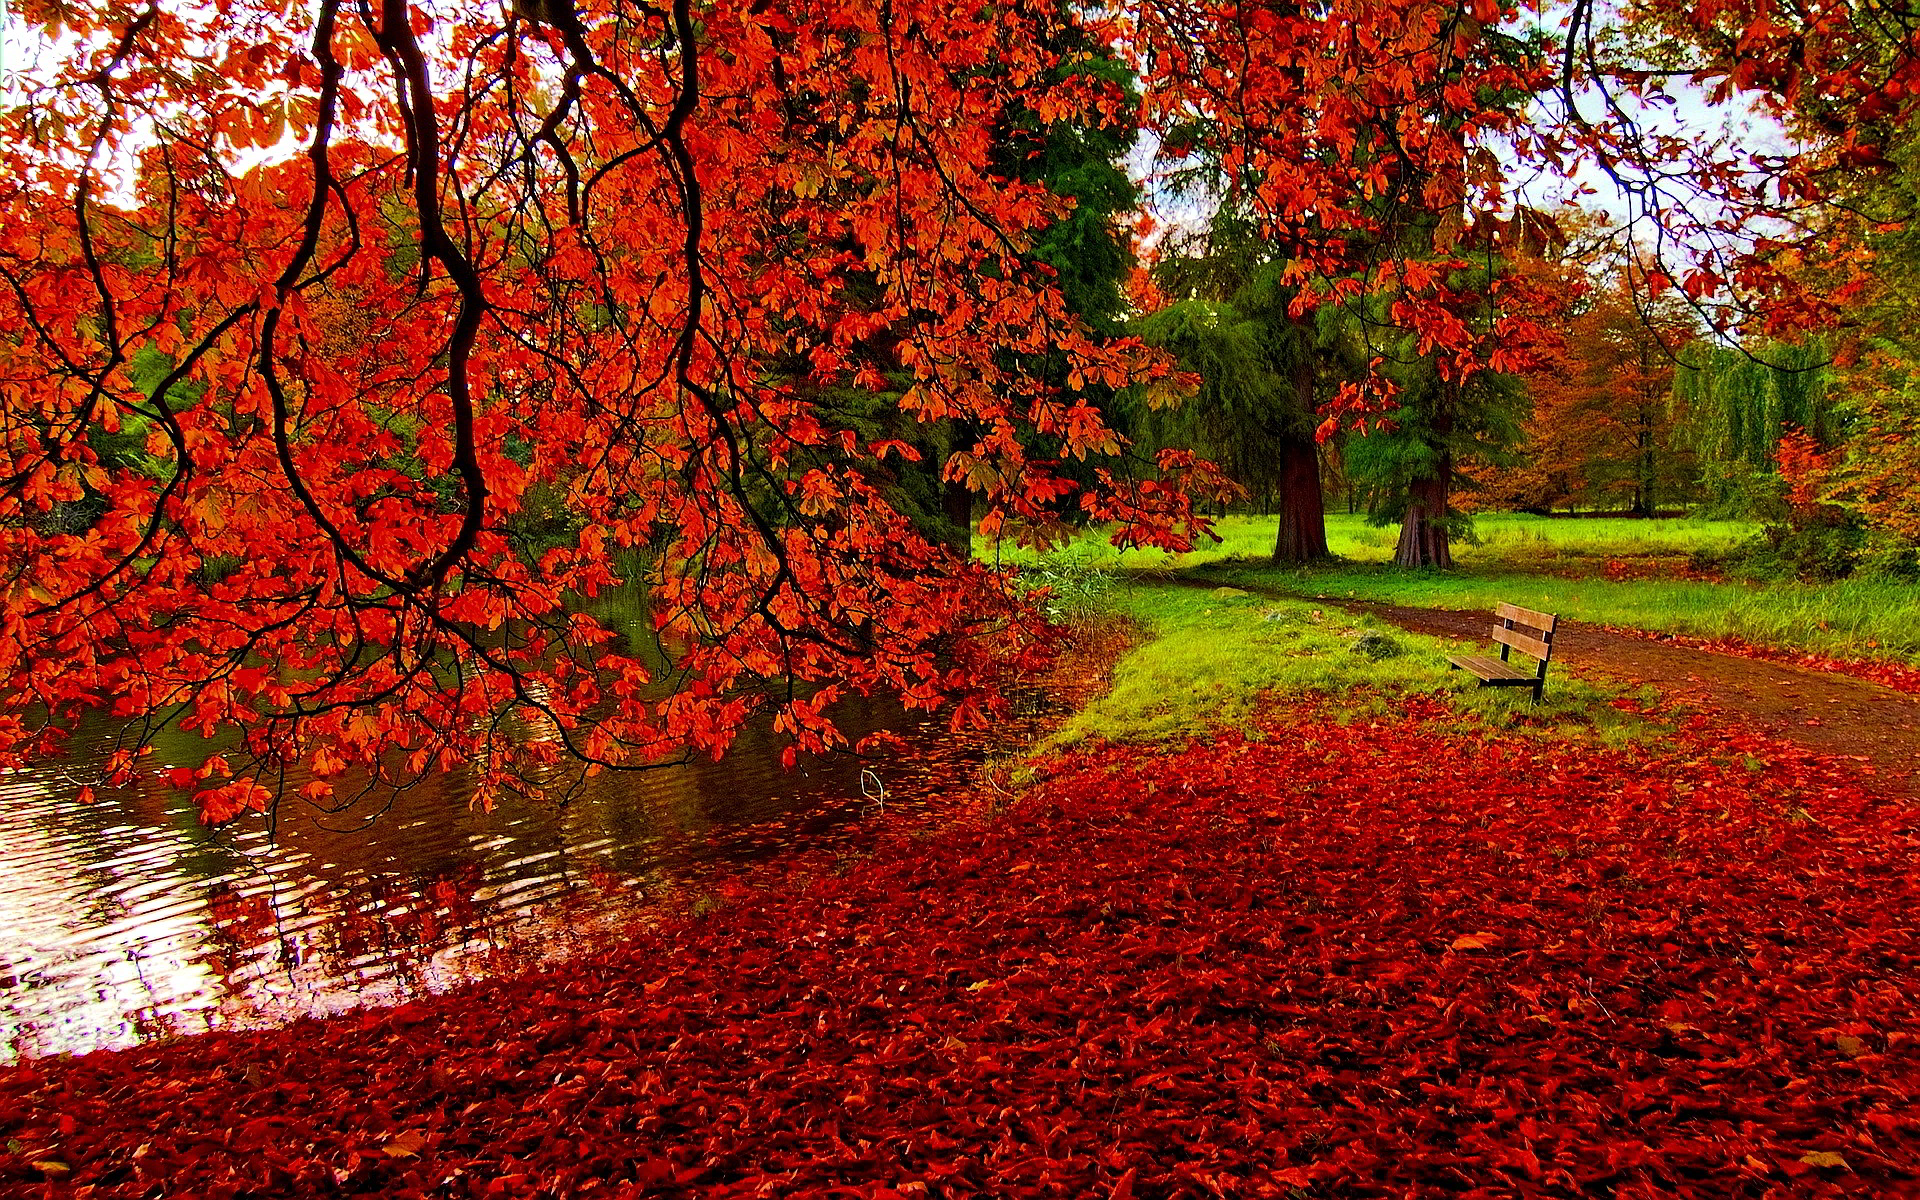 Fall Autumn Wallpapers Archives Page 5 Of 6 Hd Desktop